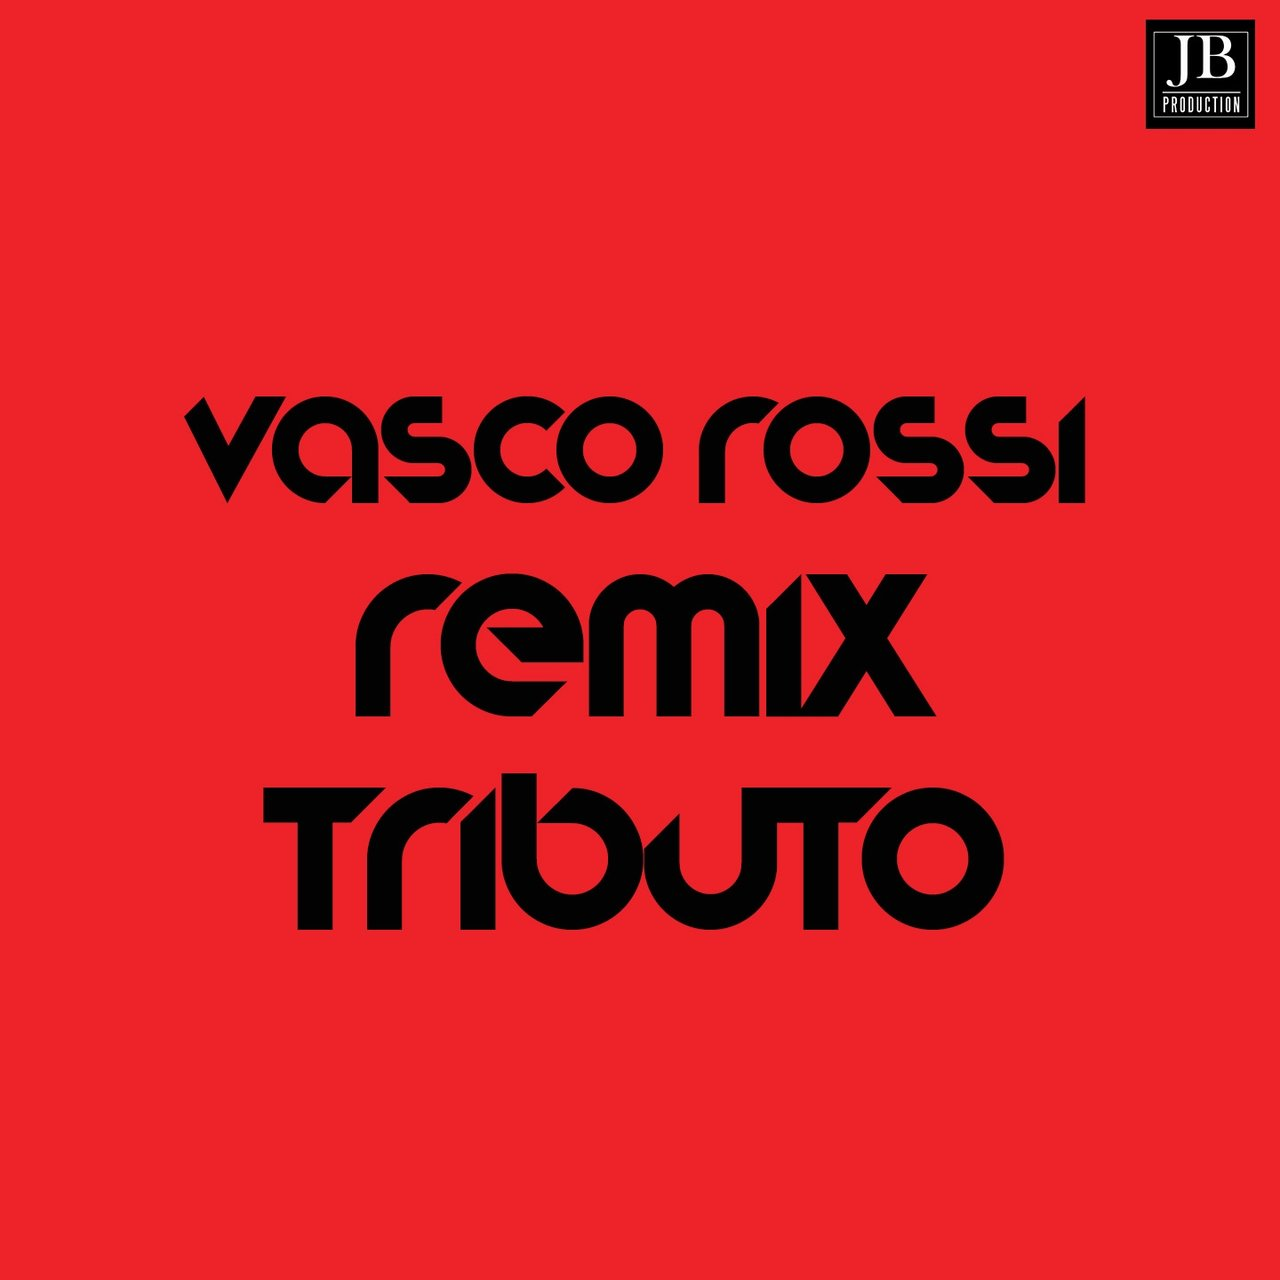 Rewind Vasco Rossi Vasco Rossi Rewind Video